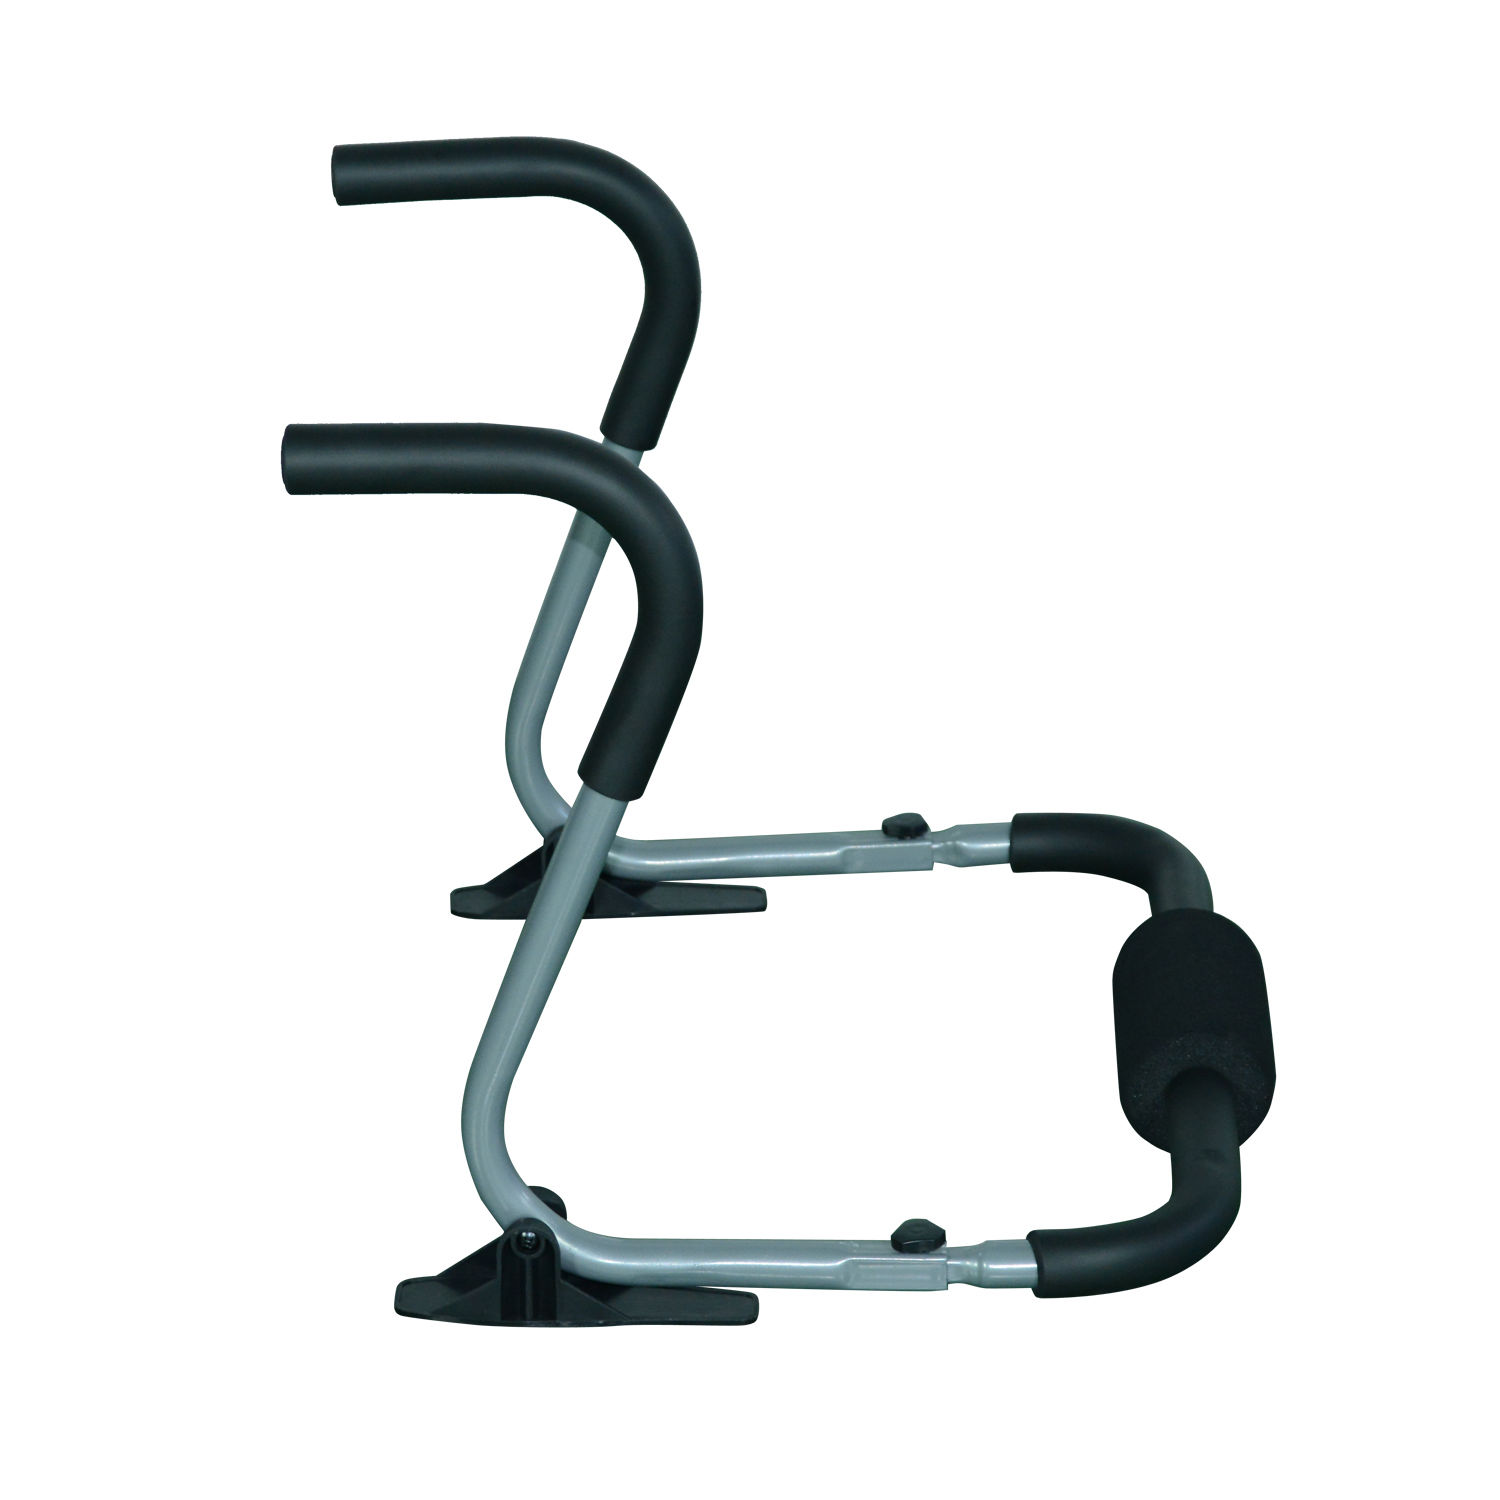 Ab-Fitness-Crunch-abdominal-Exercise-Workout-MacHine-Home-Gym-3-types miniature 25